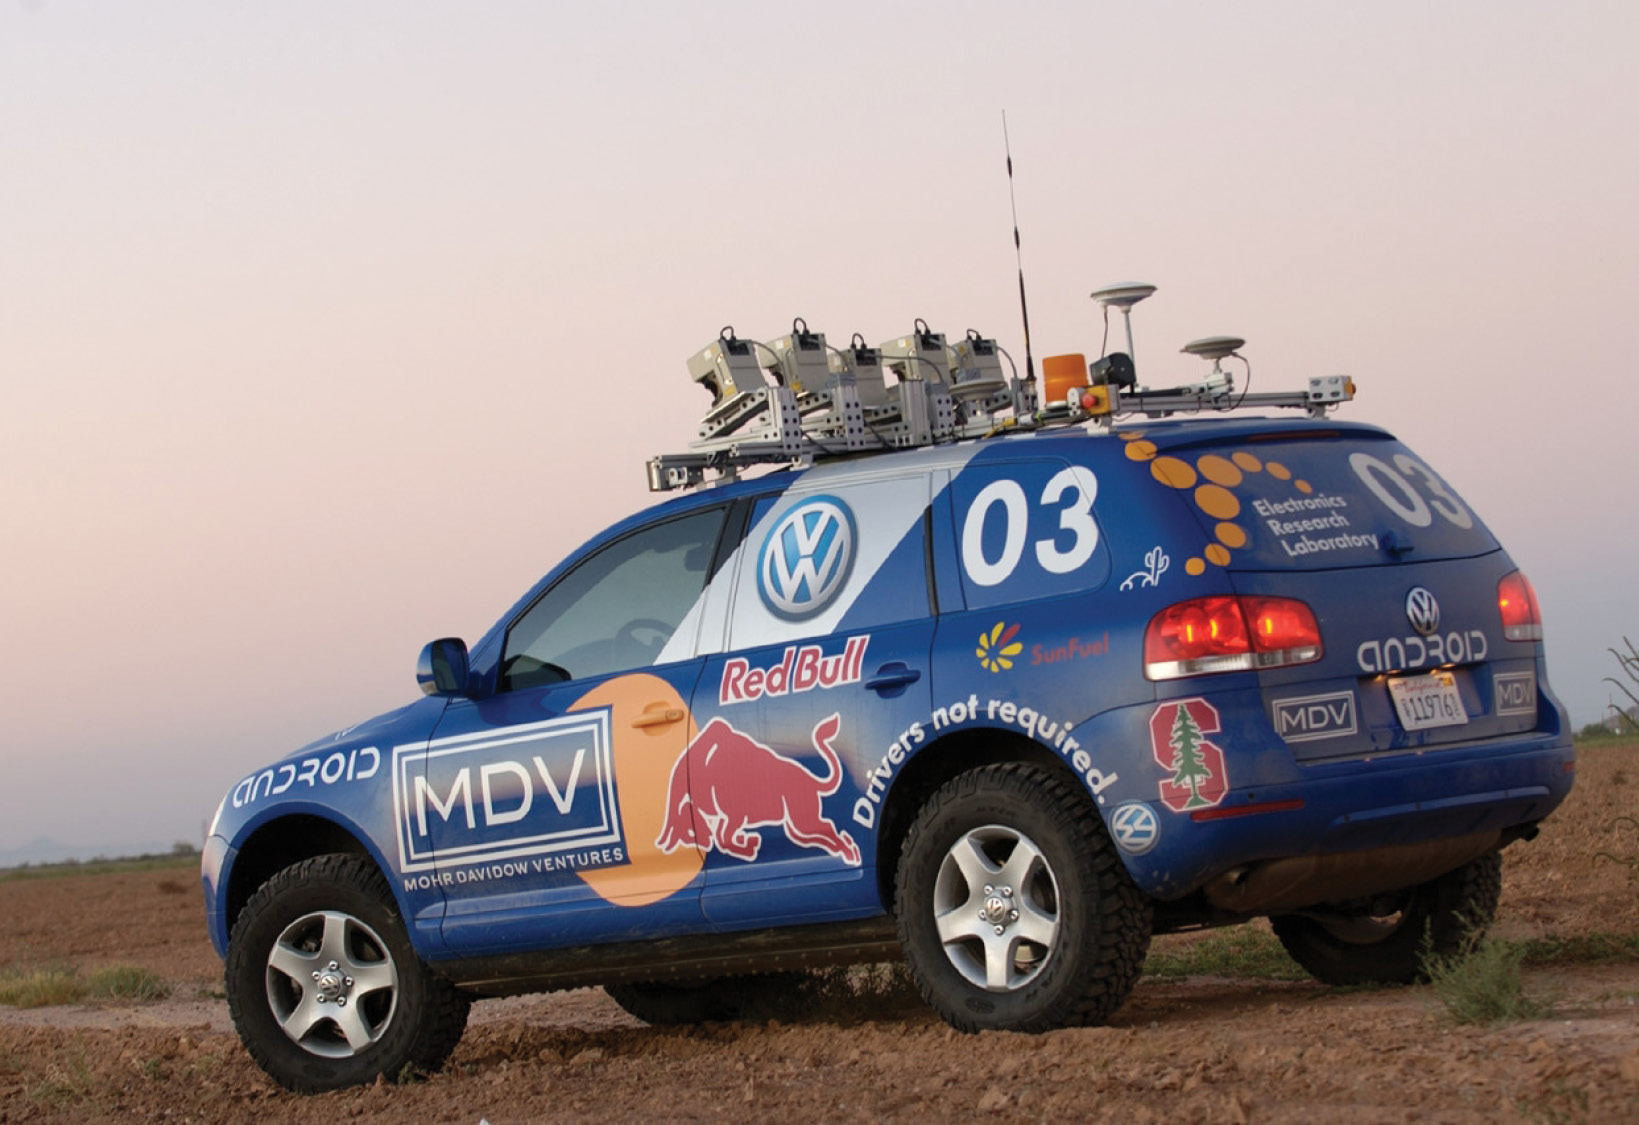 Stanley, an autonomous car developed by the Stanford University Racing Team, won the 2005 DARPA Grand Challenge after successfully traversing a 132-mile course. Photo courtesy of the Smithsonian Air & Space Museum.